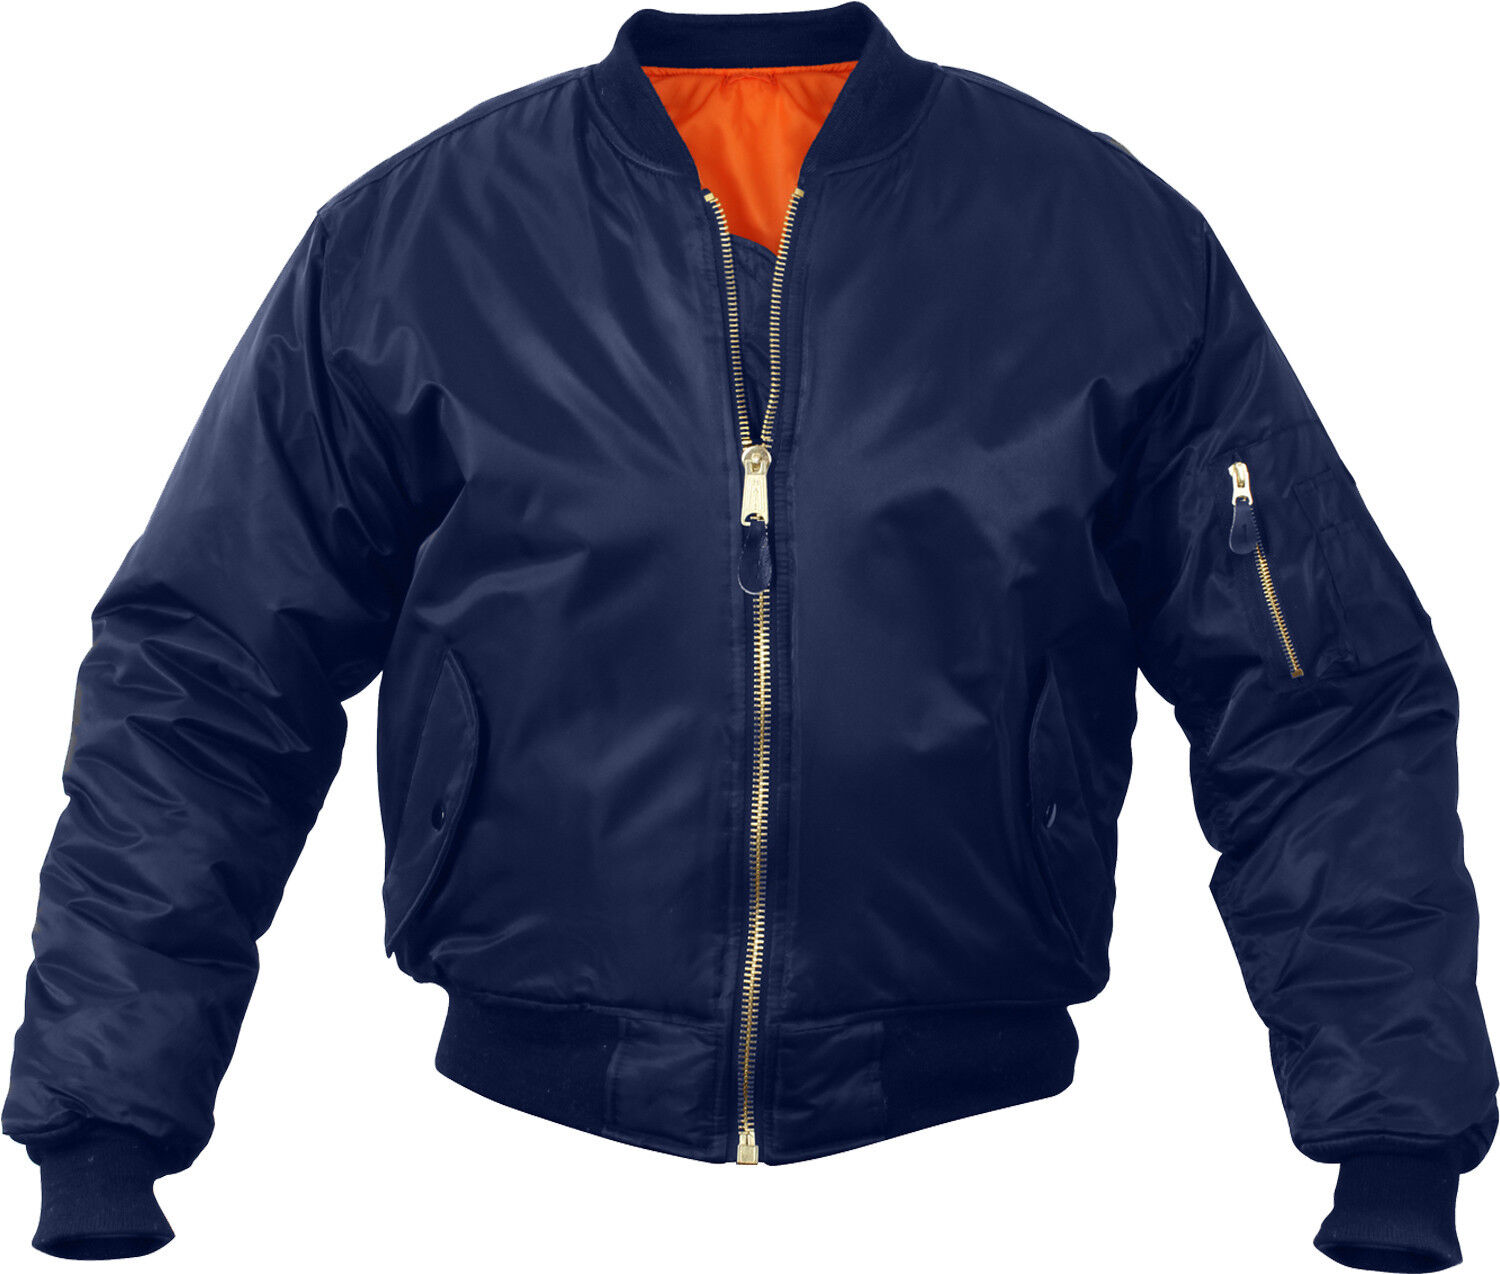 Navy Blue Military Air Force MA-1 Reversible Bomber Coat Flight